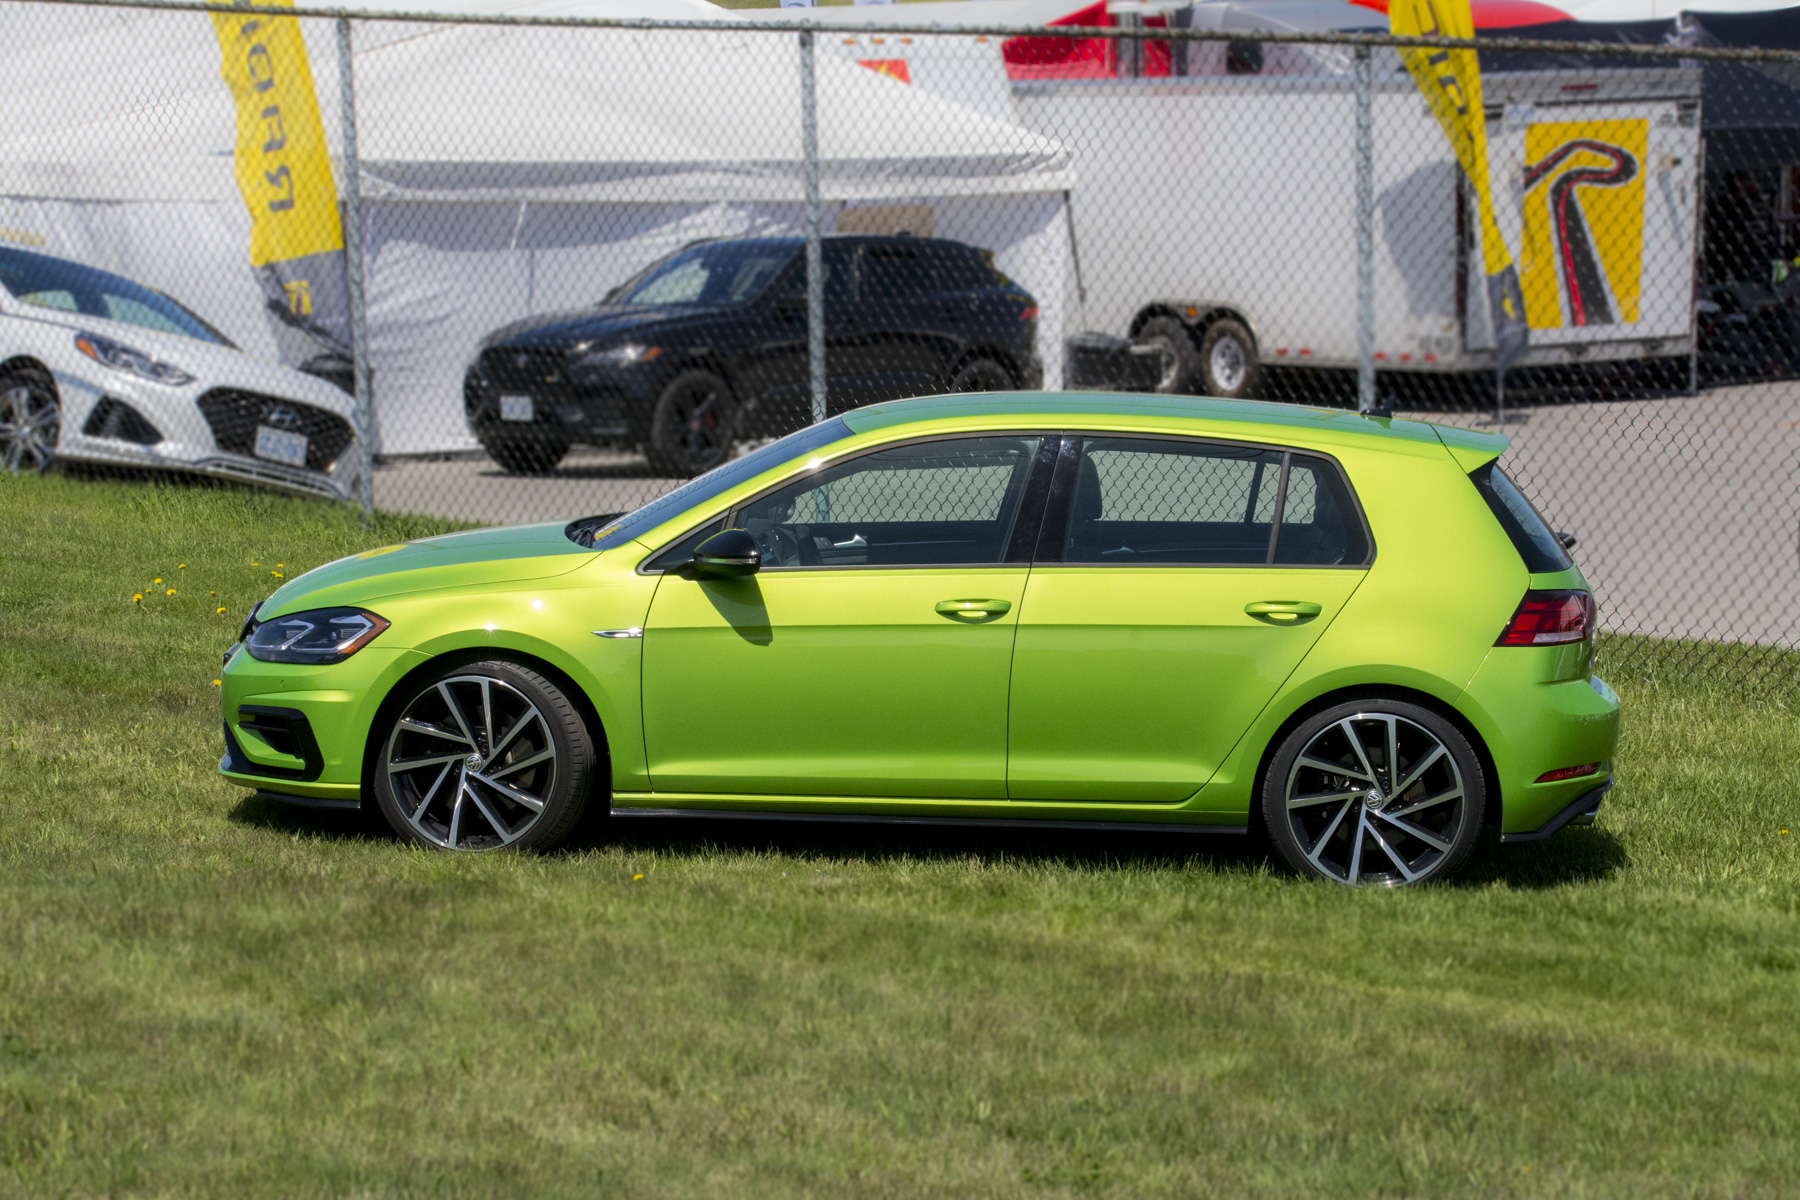 2018 Volkswagen Golf R (52)